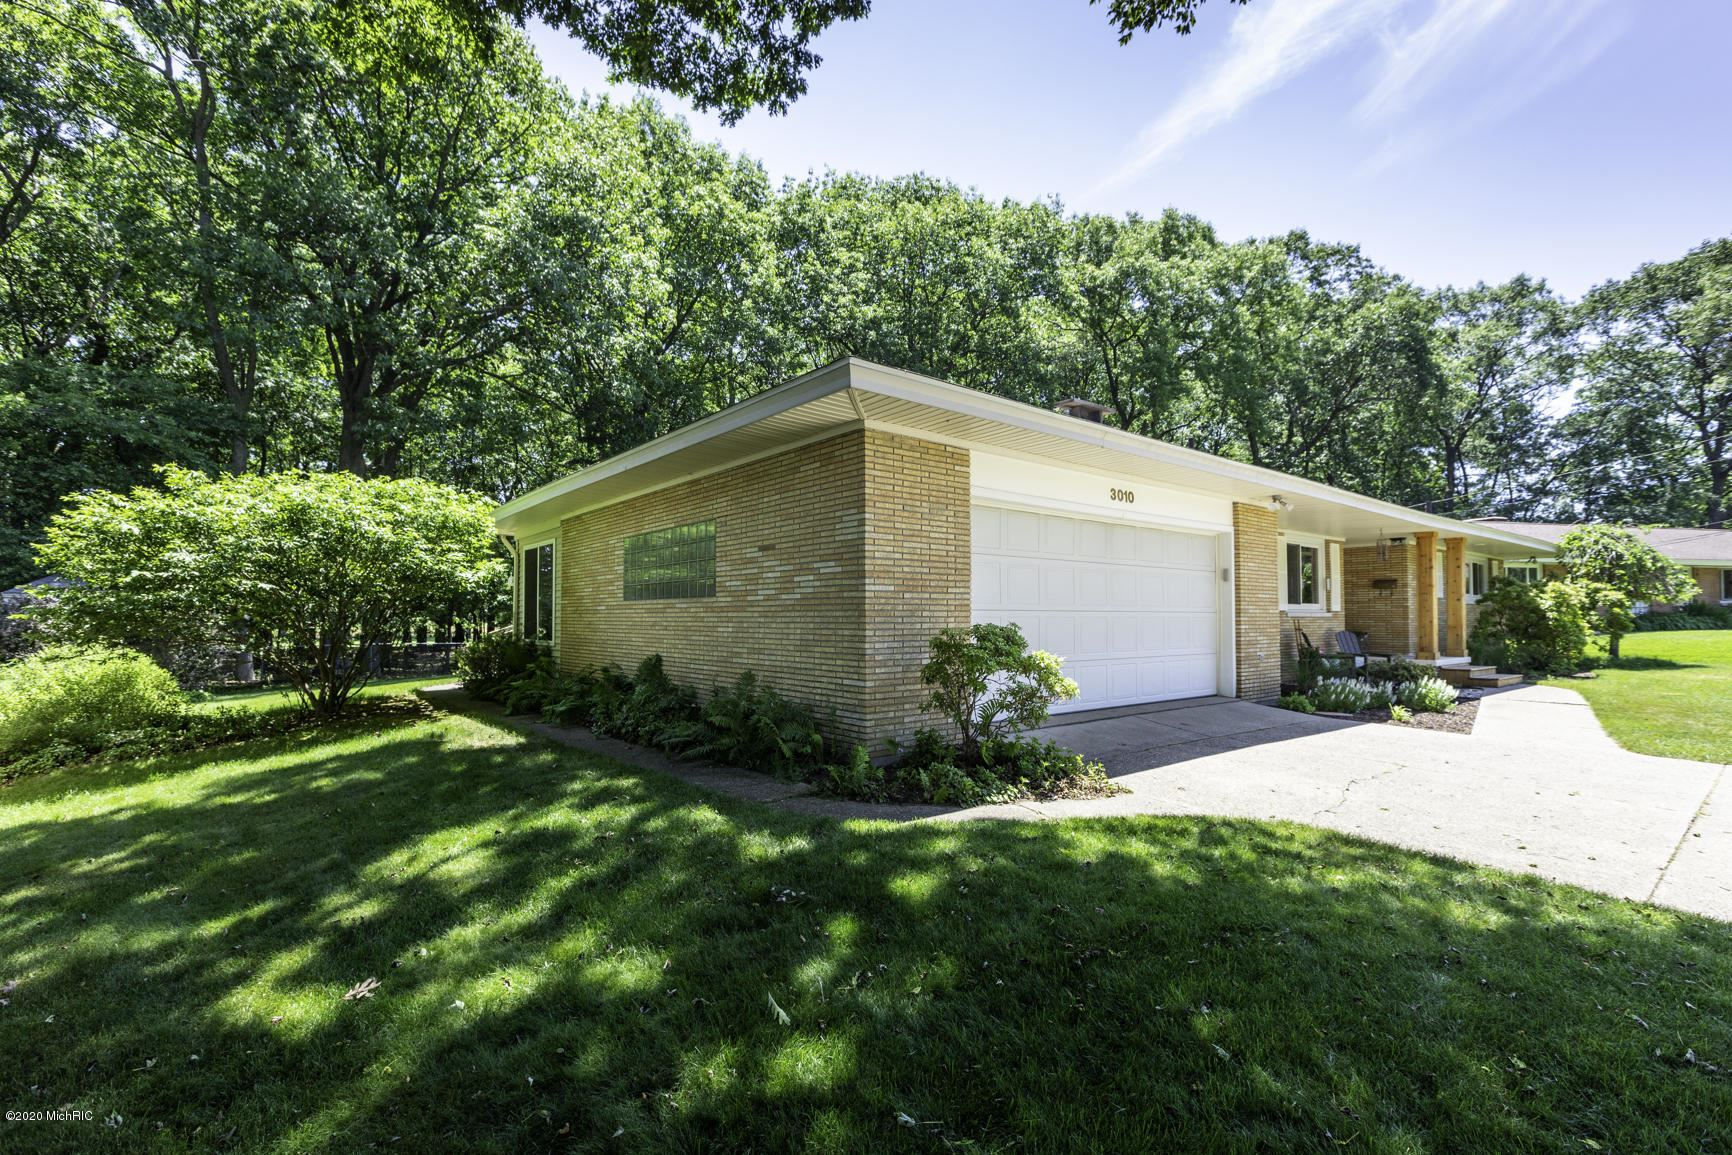 Photo of 3010 Country Club Drive, Muskegon, MI 49441 (MLS # 20025363)